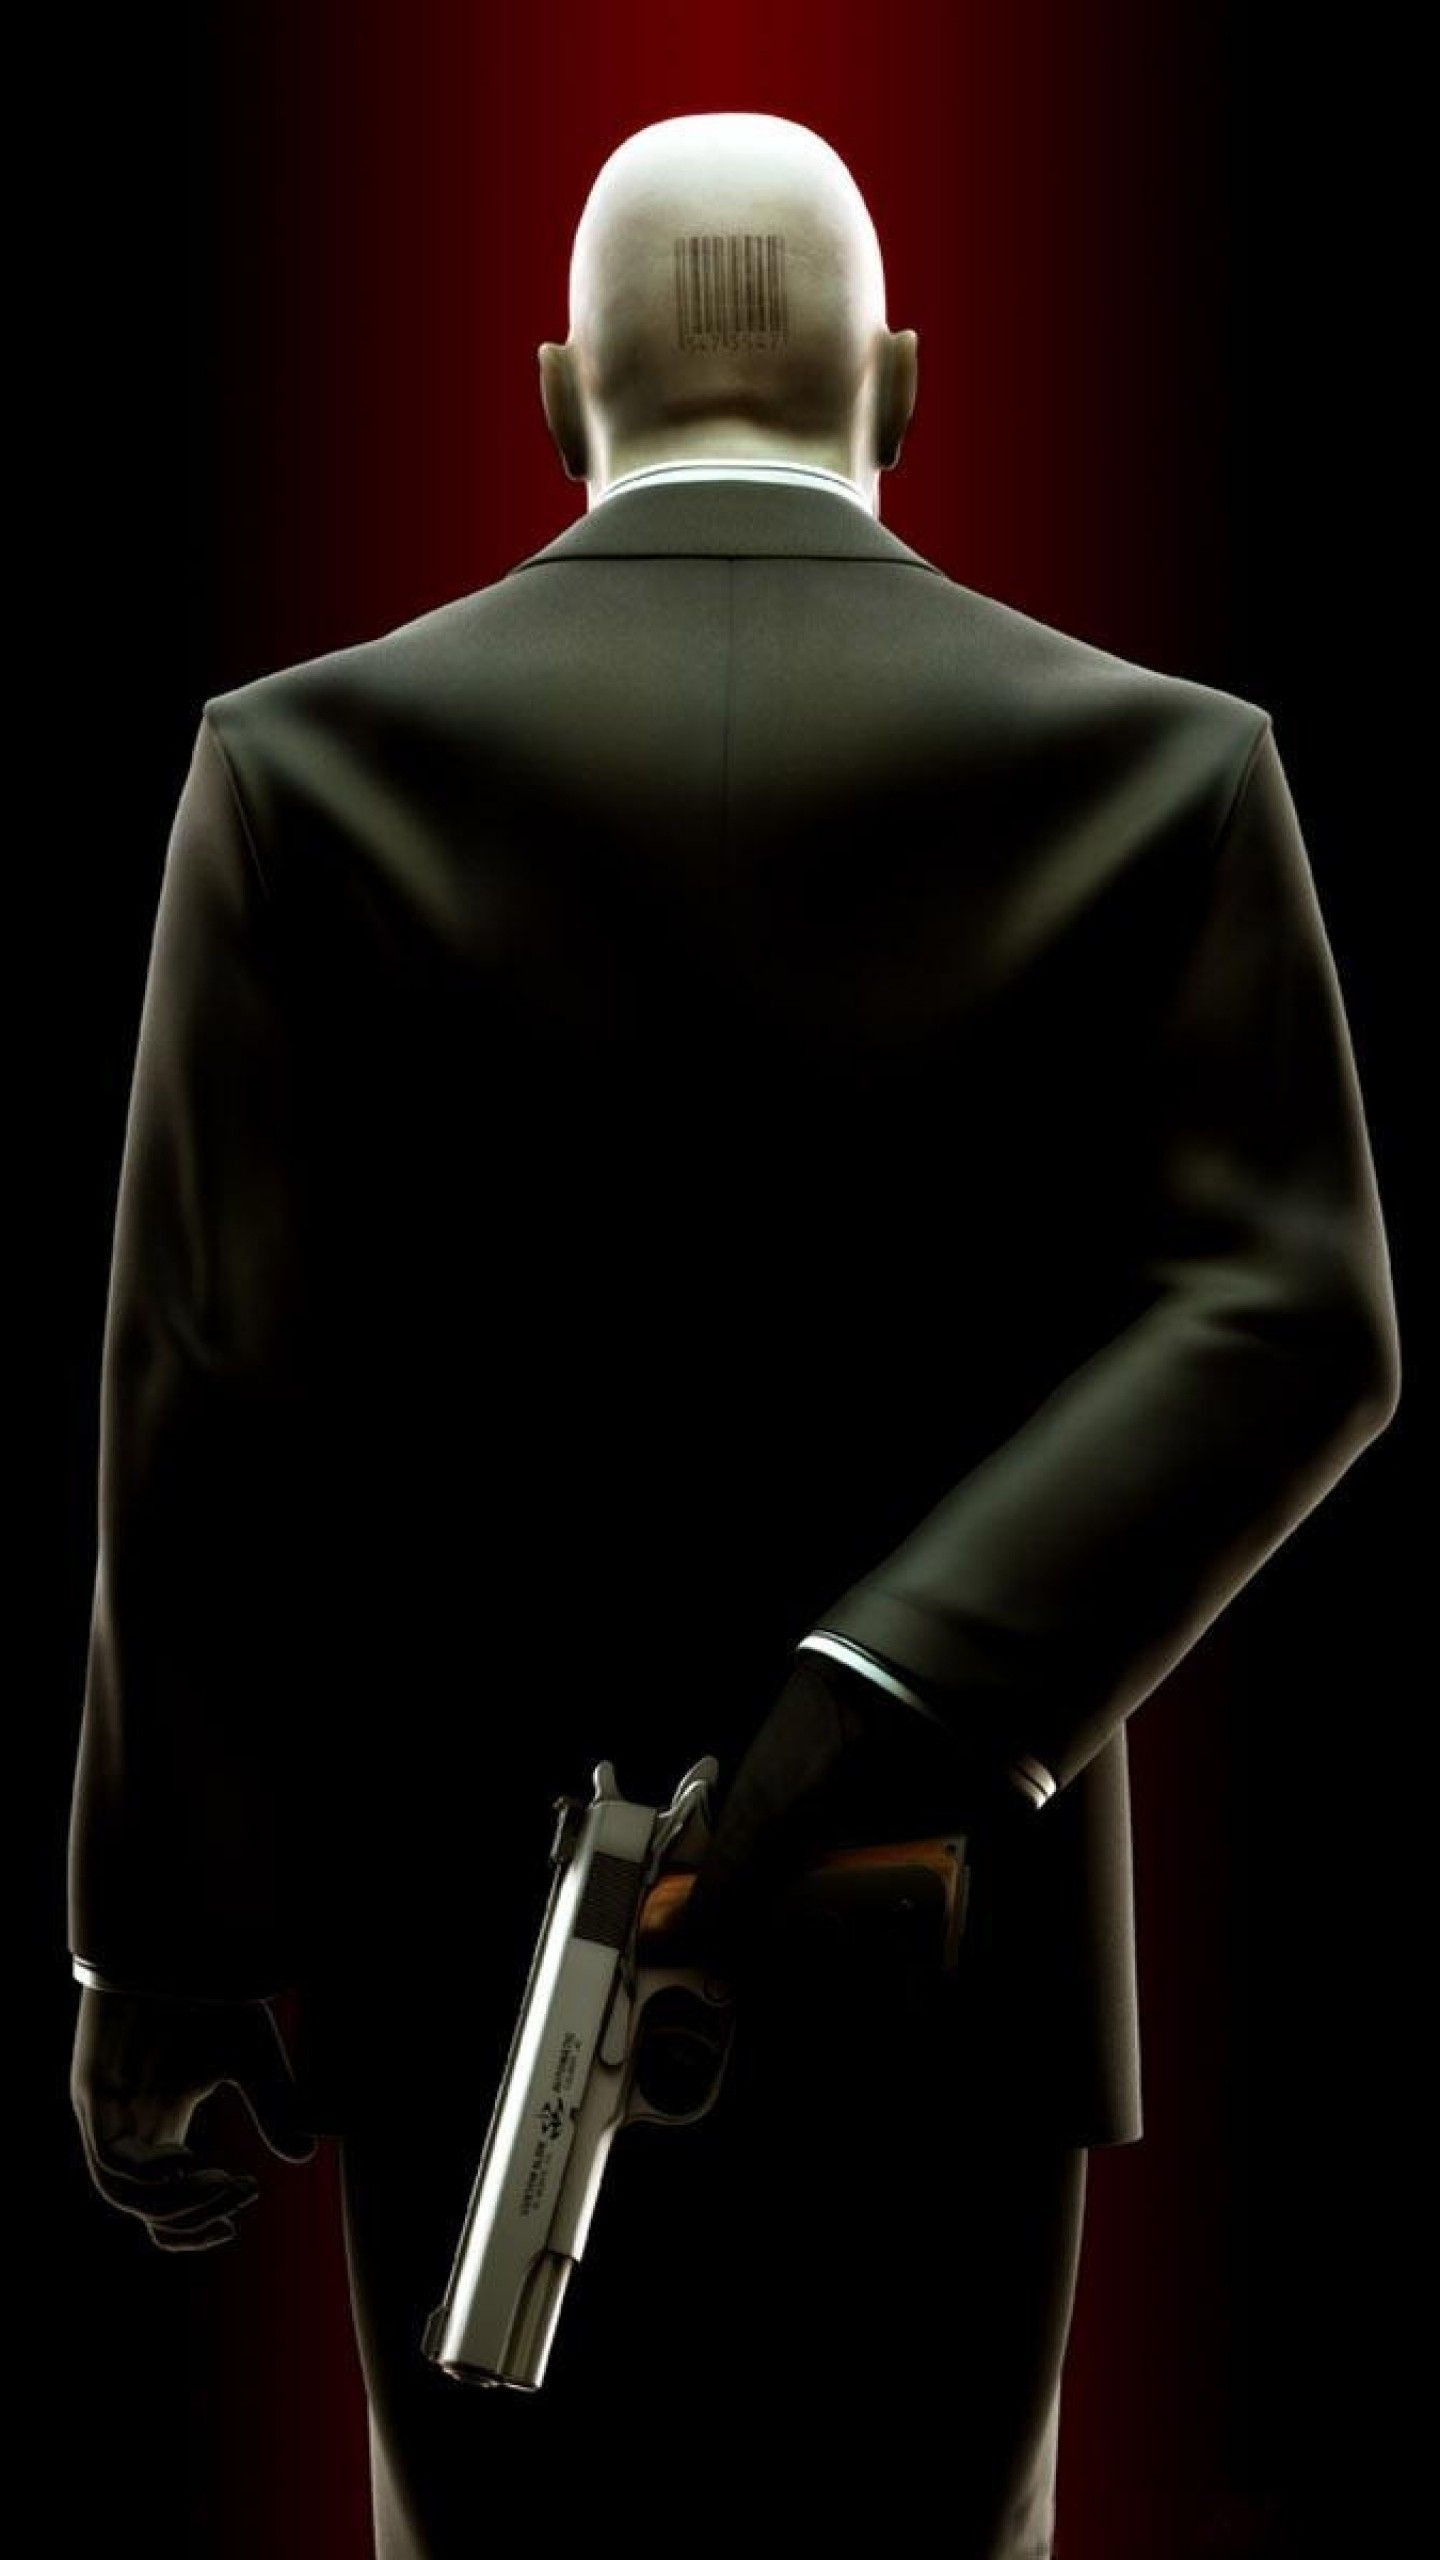 1440x2560 Preview Wallpaper Hitman Barcode Bald Pistol Agent 47 1440x2560 Hitman Agent 47 Hitman Agent 47